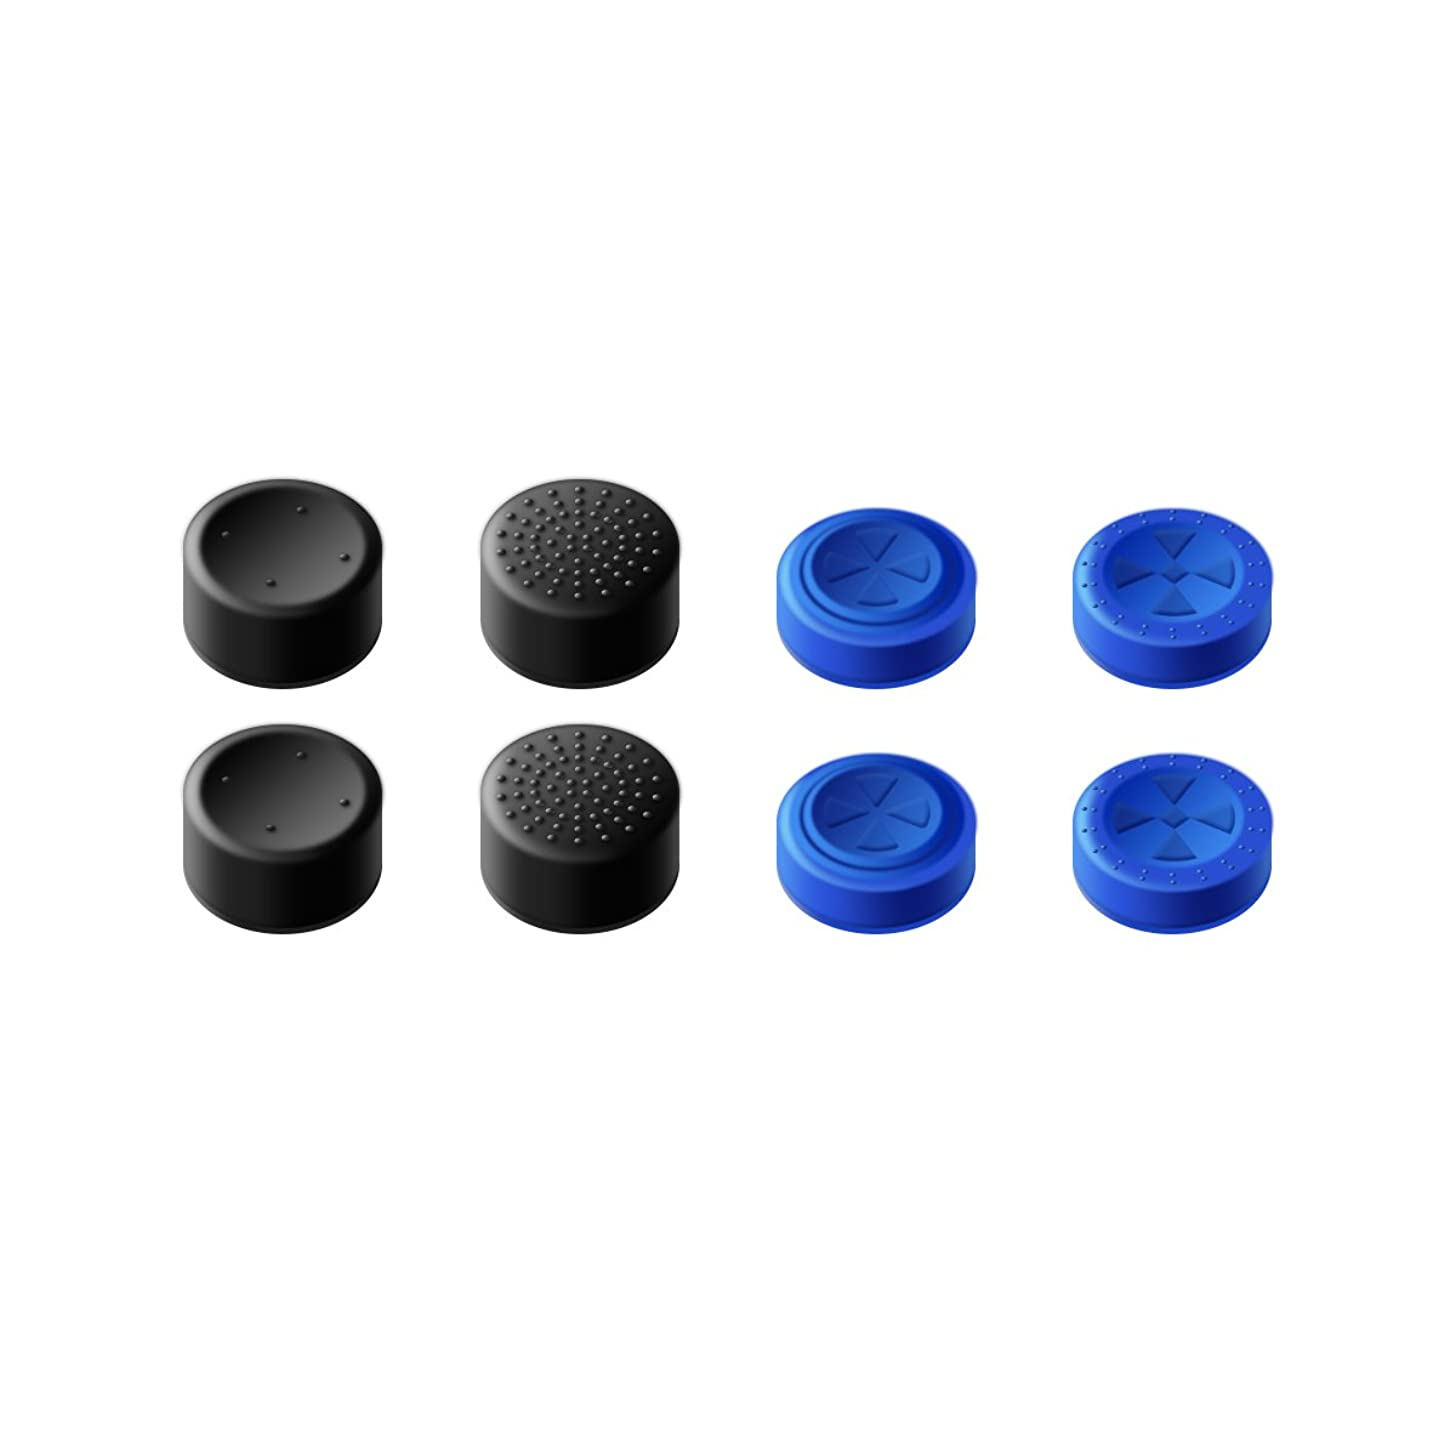 GameSir PS4 Controller Thumb Grips, Analog Stick Covers Skins for PS4/Slim/Pro Controller, Best Caps for PS4 Gaming Gamepad - Blue & Black Set (4 Pairs Total)